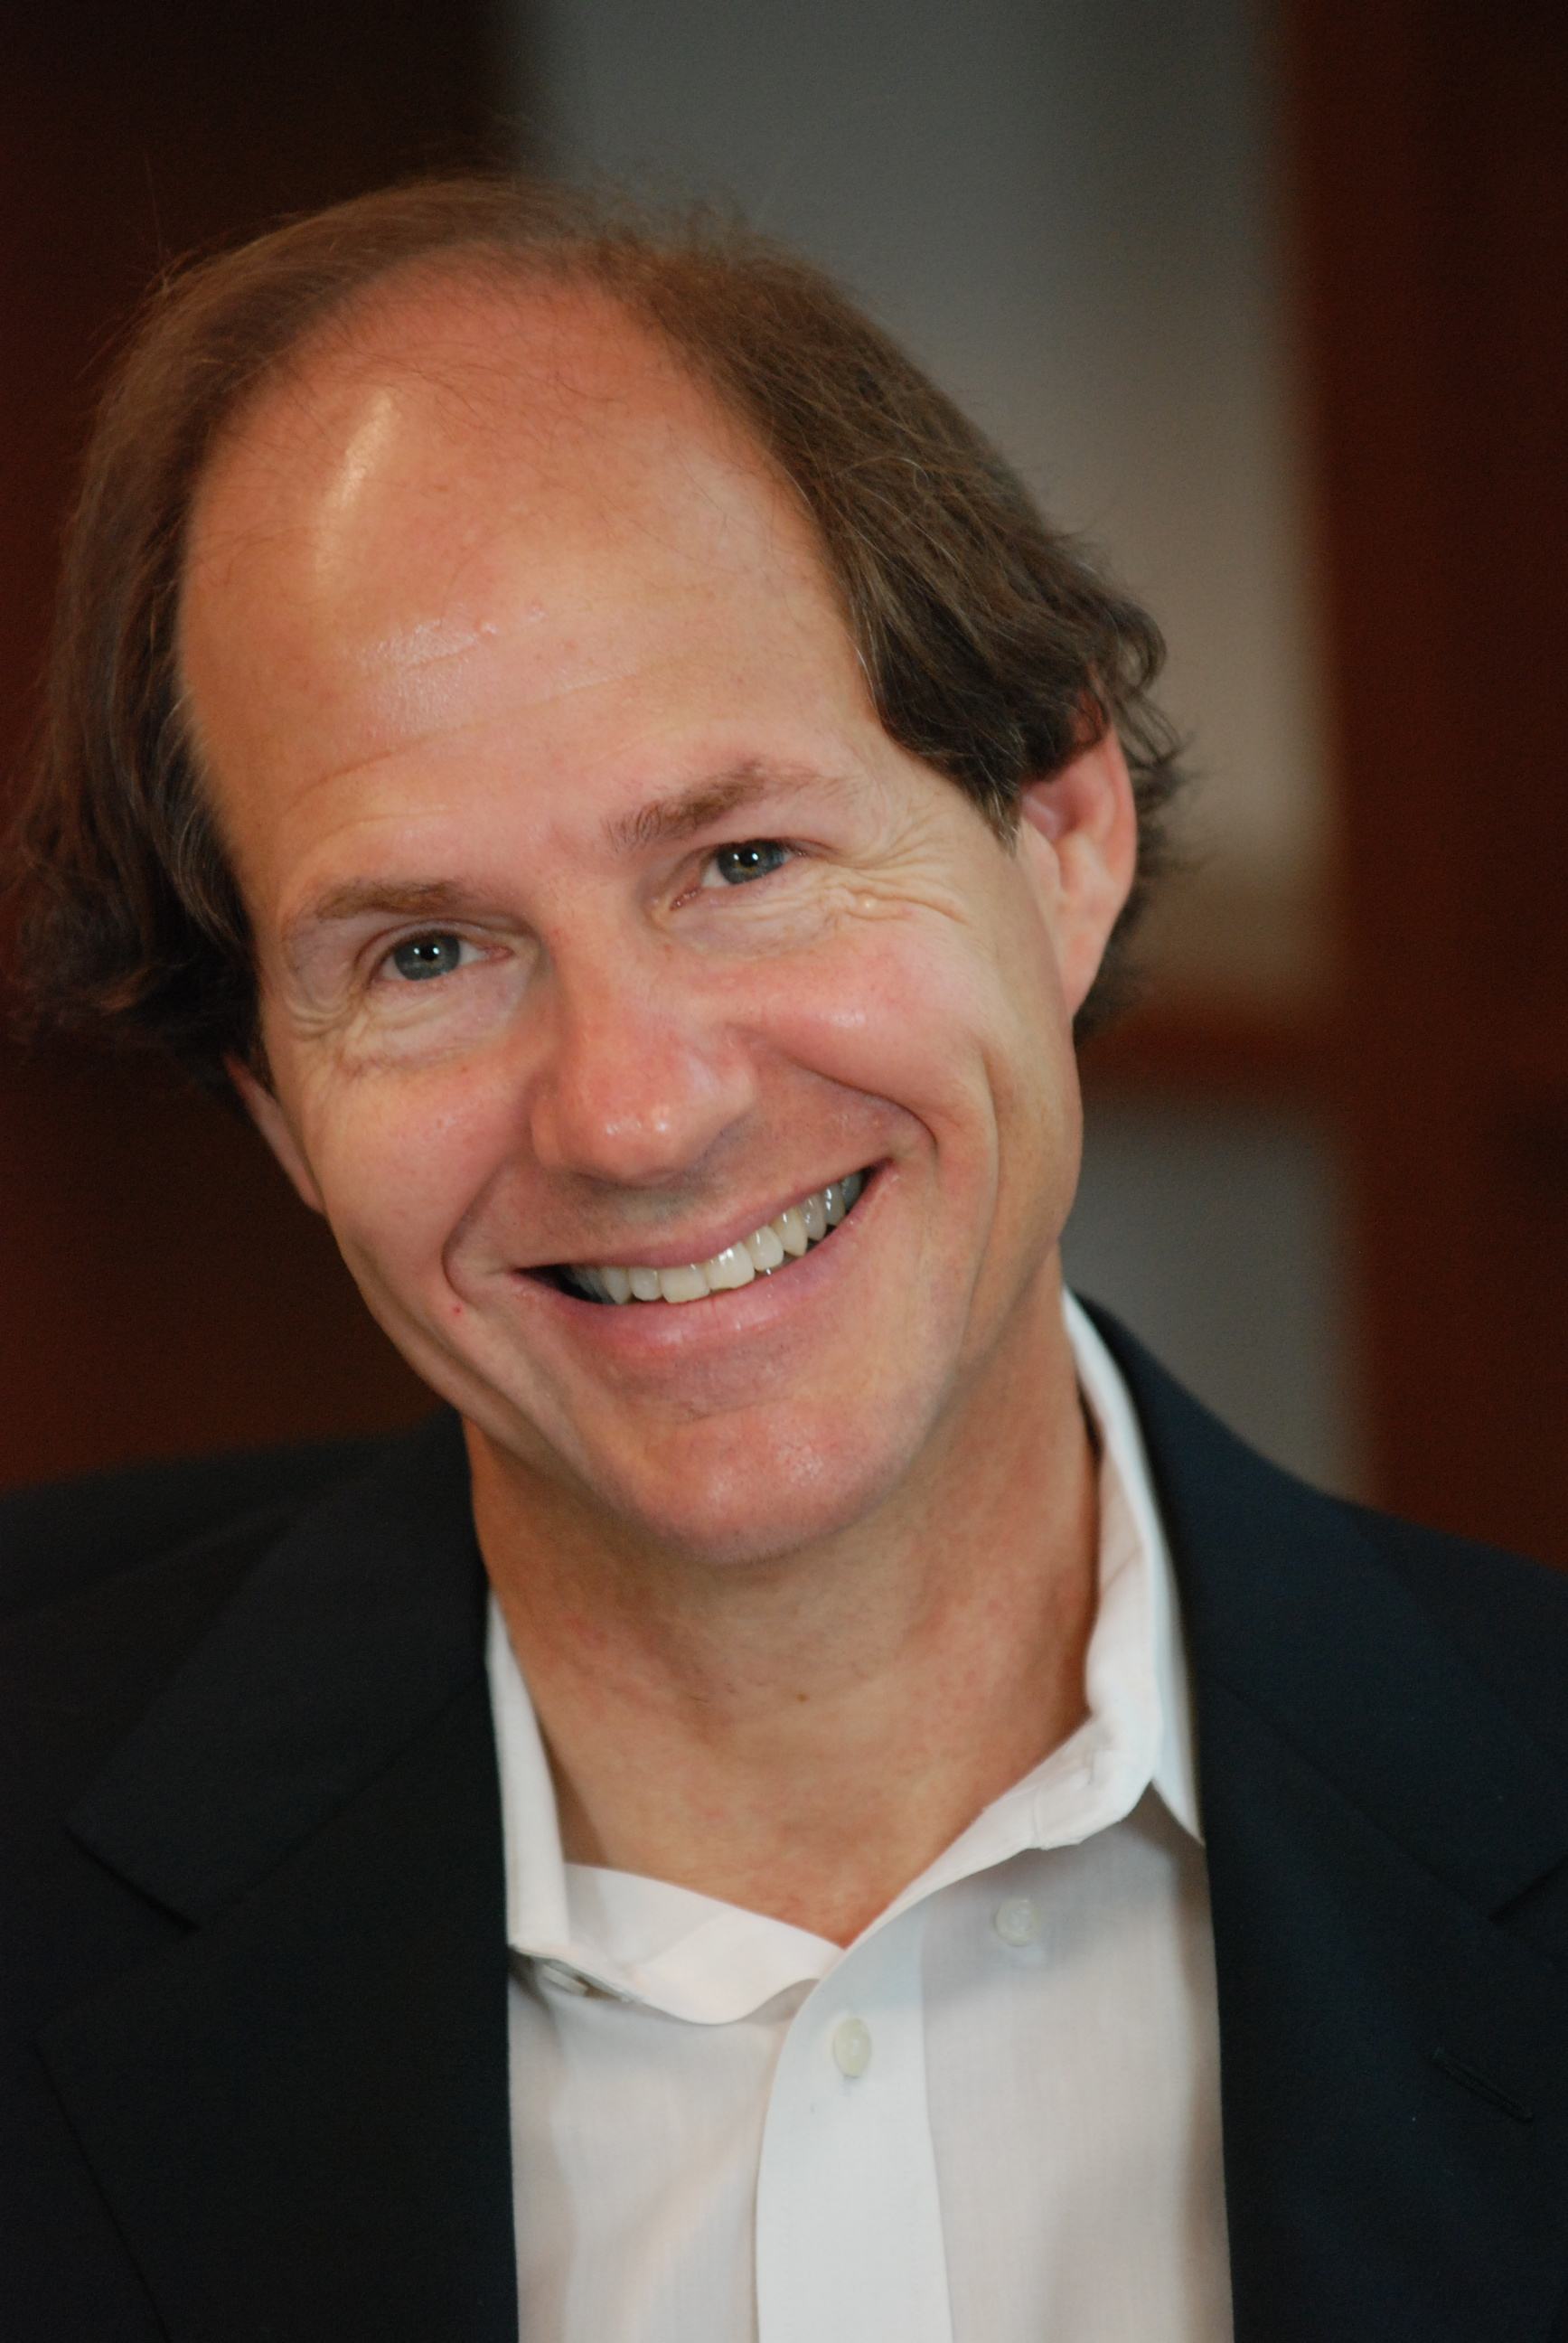 Cass Sunstein, by Phil Farsworth